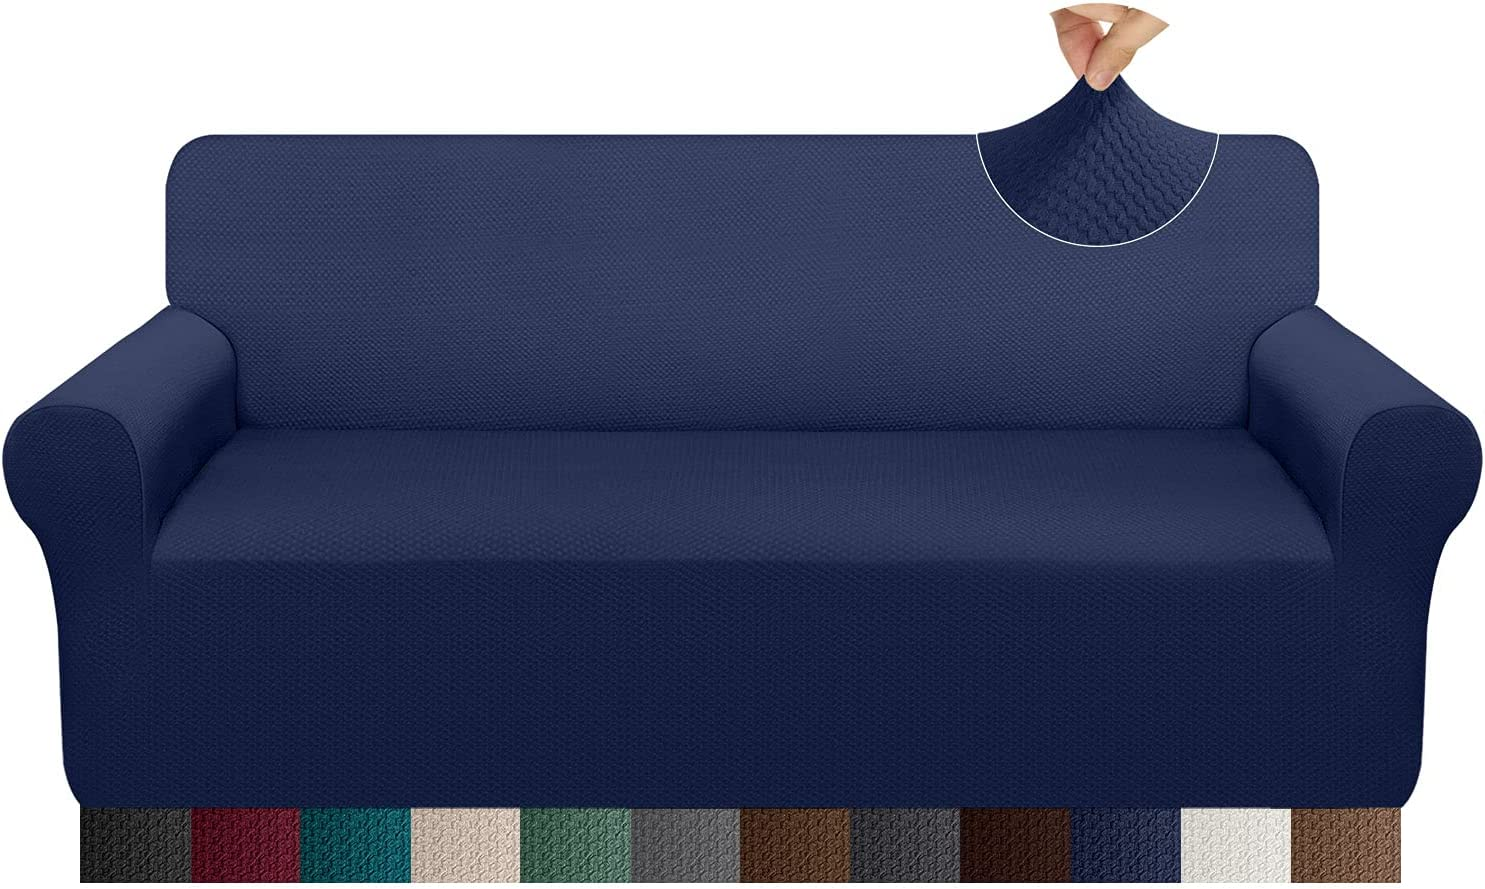 Pitpet Thickened Sofa Cover Stretch Unique Pattern Couch Covers for Oversized Couch Anti-Slip Sofa Slipcover for Dogs Pets Friendly Furniture Protector with Elastic Band (X-Large, Navy Blue)